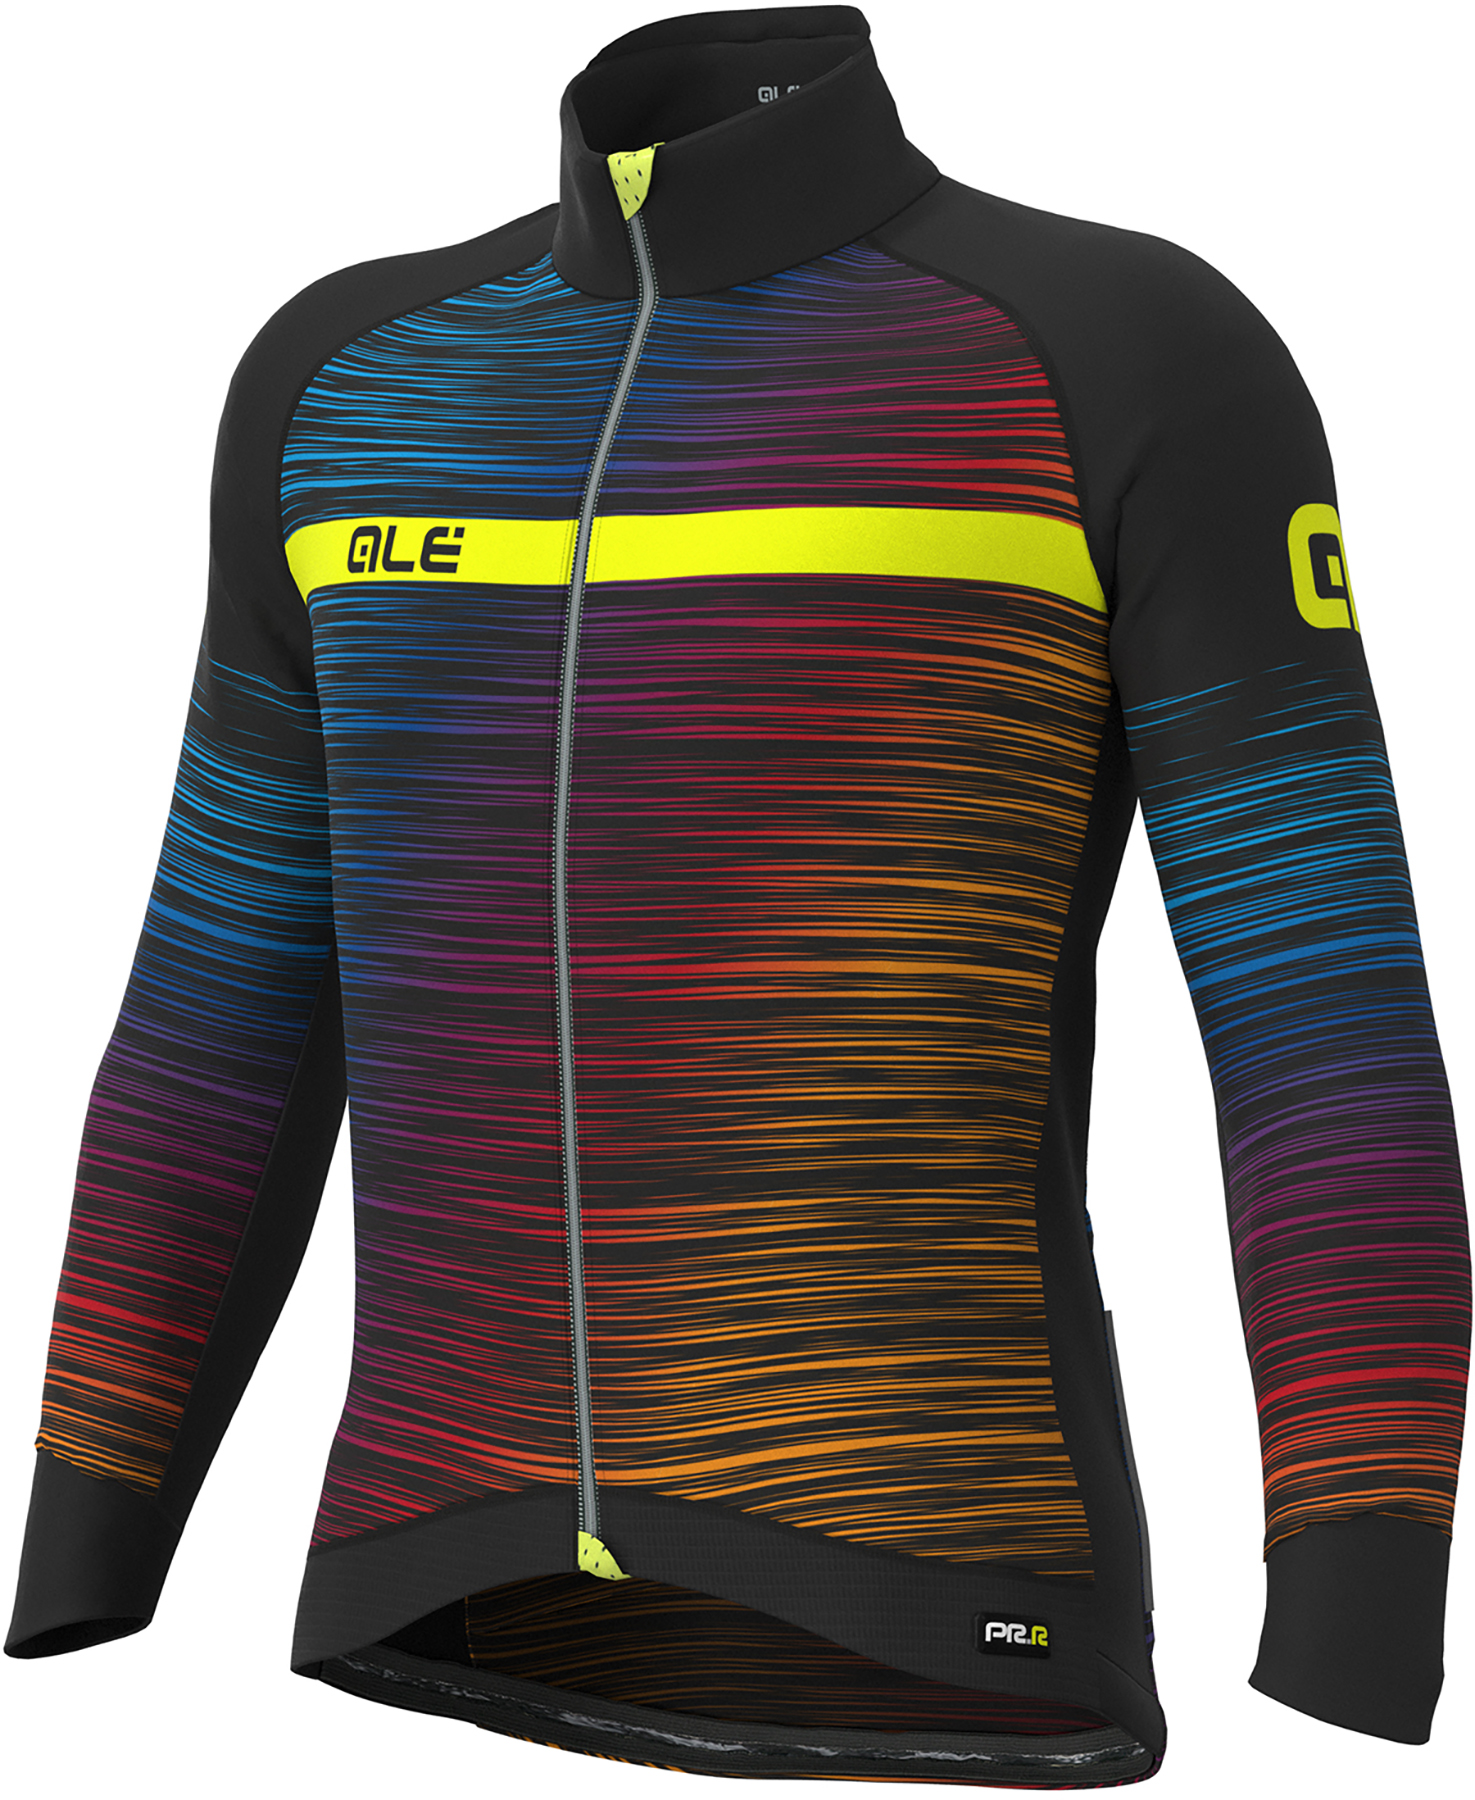 Alé - The End | cycling jacket